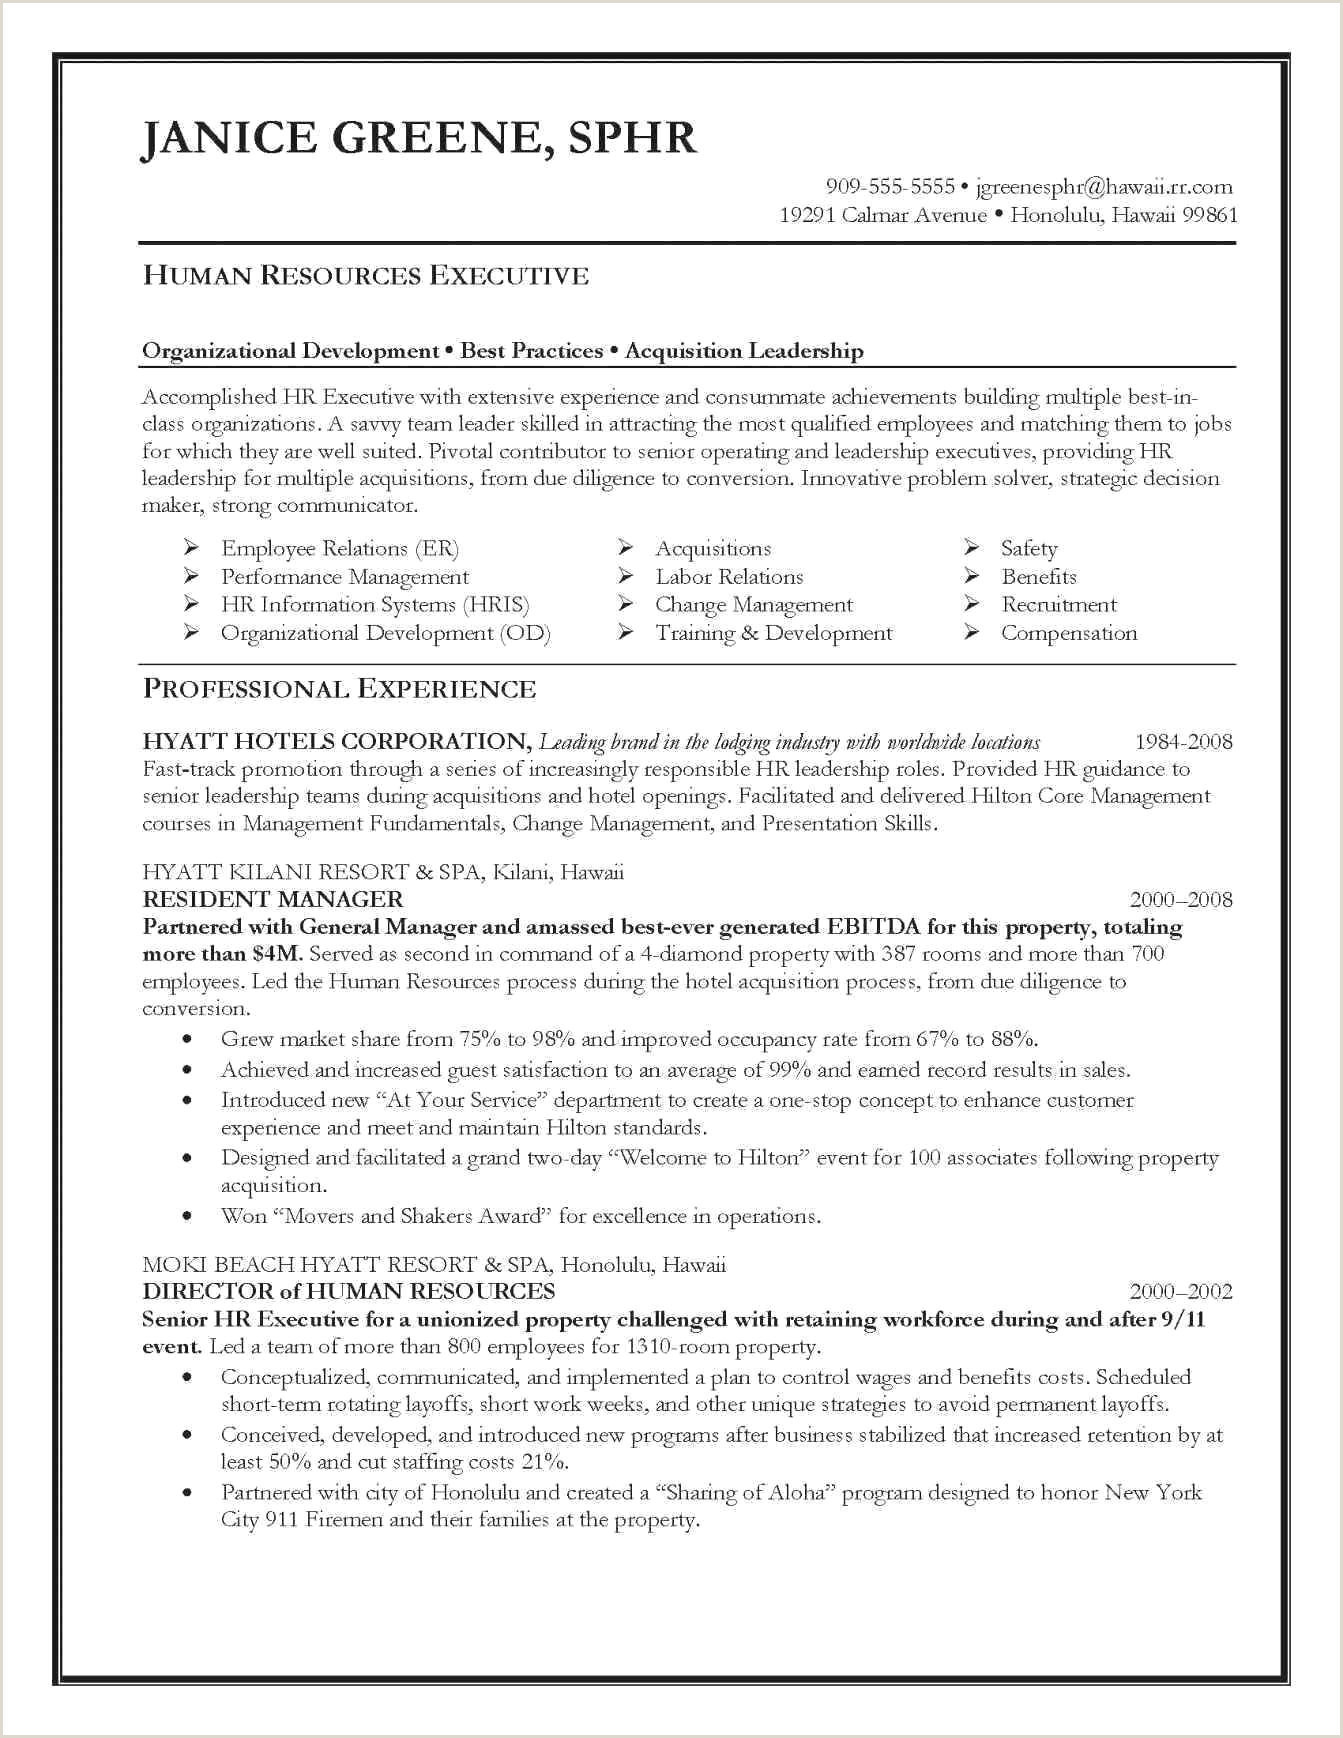 Latest Cv format for Experienced Accountant Entry Level Human Resources Resume New 40 Entry Level